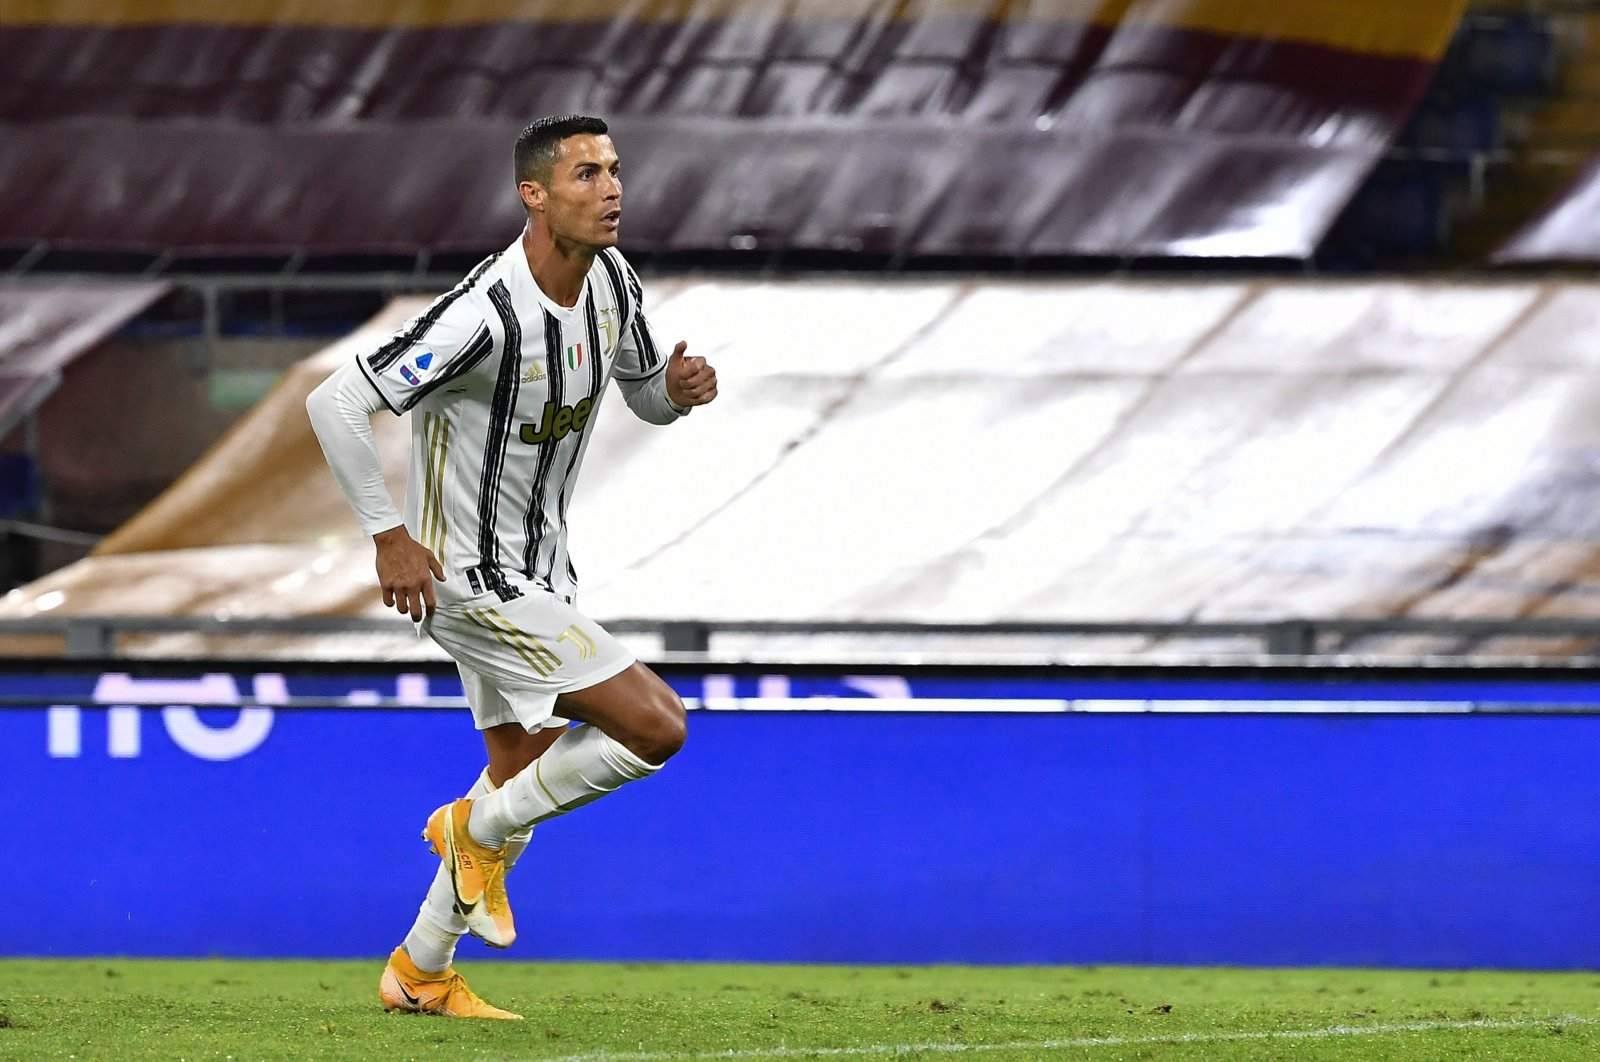 Juventus' Portuguese forward Cristiano Ronaldo celebrates after scoring a penalty and equalizing 1-1 during the Italian Serie A football match Roma vs. Juventus at the Olympic stadium in Rome, Italy, Sept. 27, 2020. (AFP Photo)